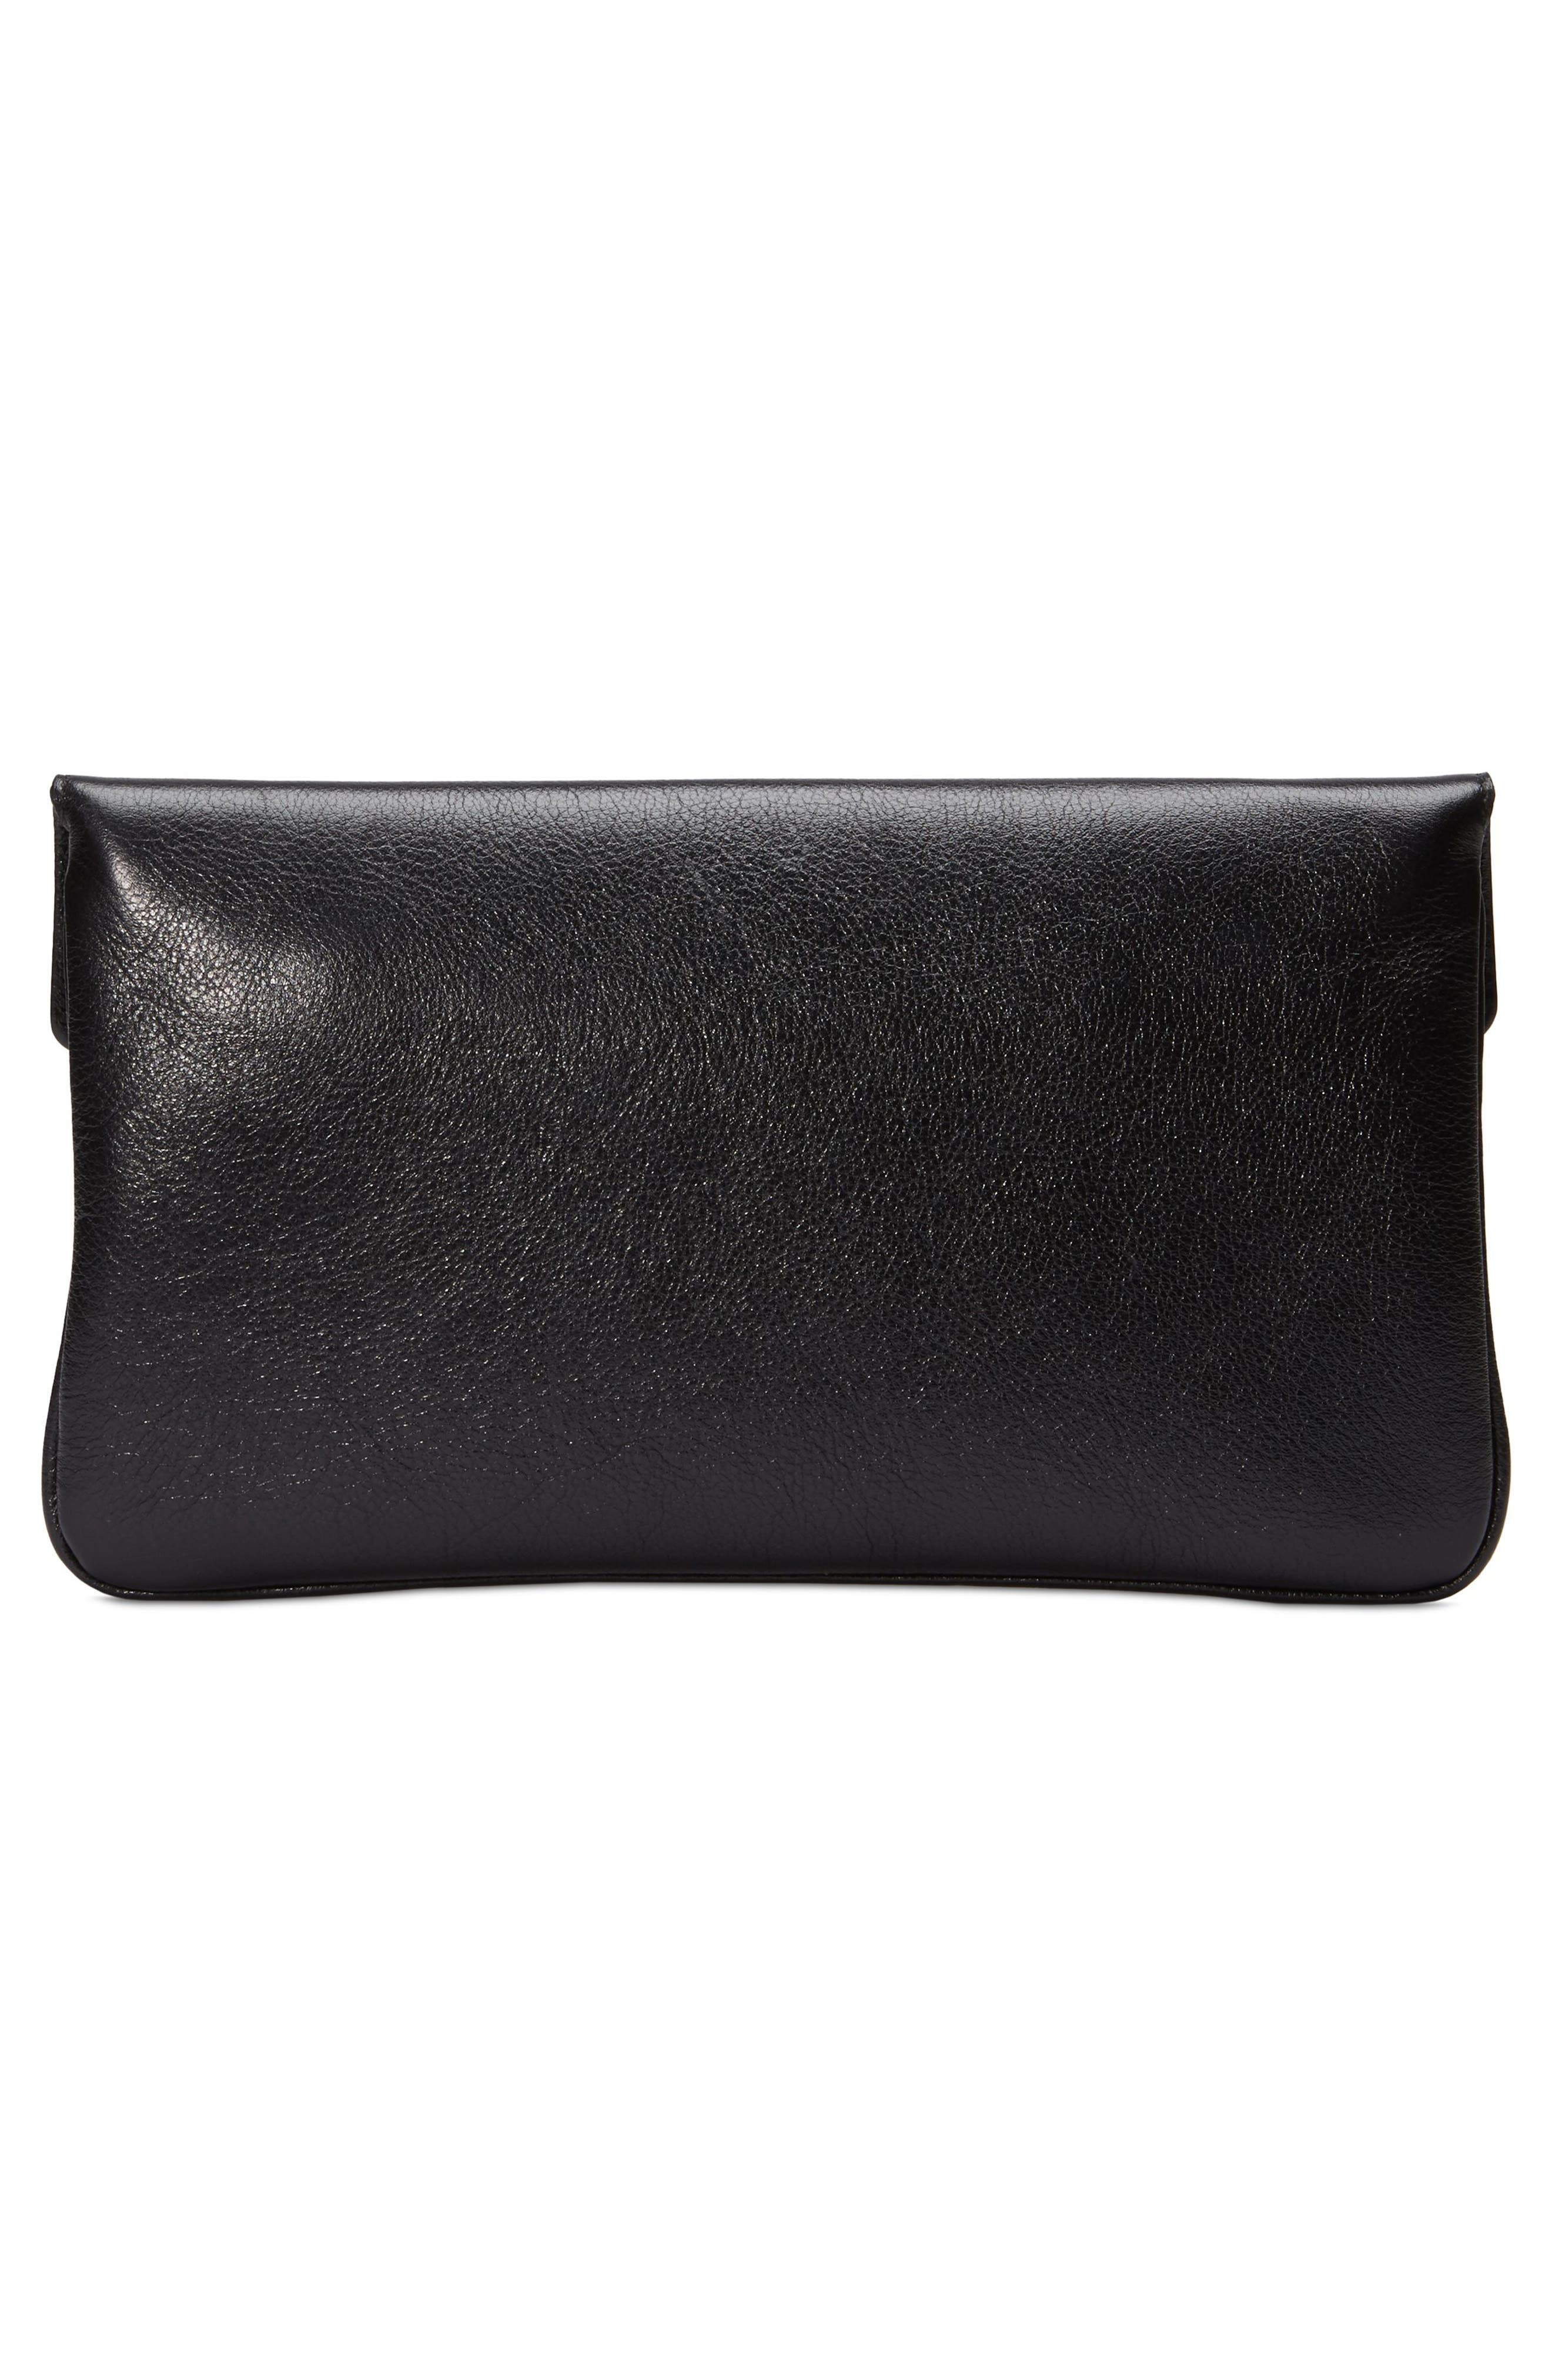 Broadway Crystal GG Leather Envelope Clutch,                             Alternate thumbnail 2, color,                             001